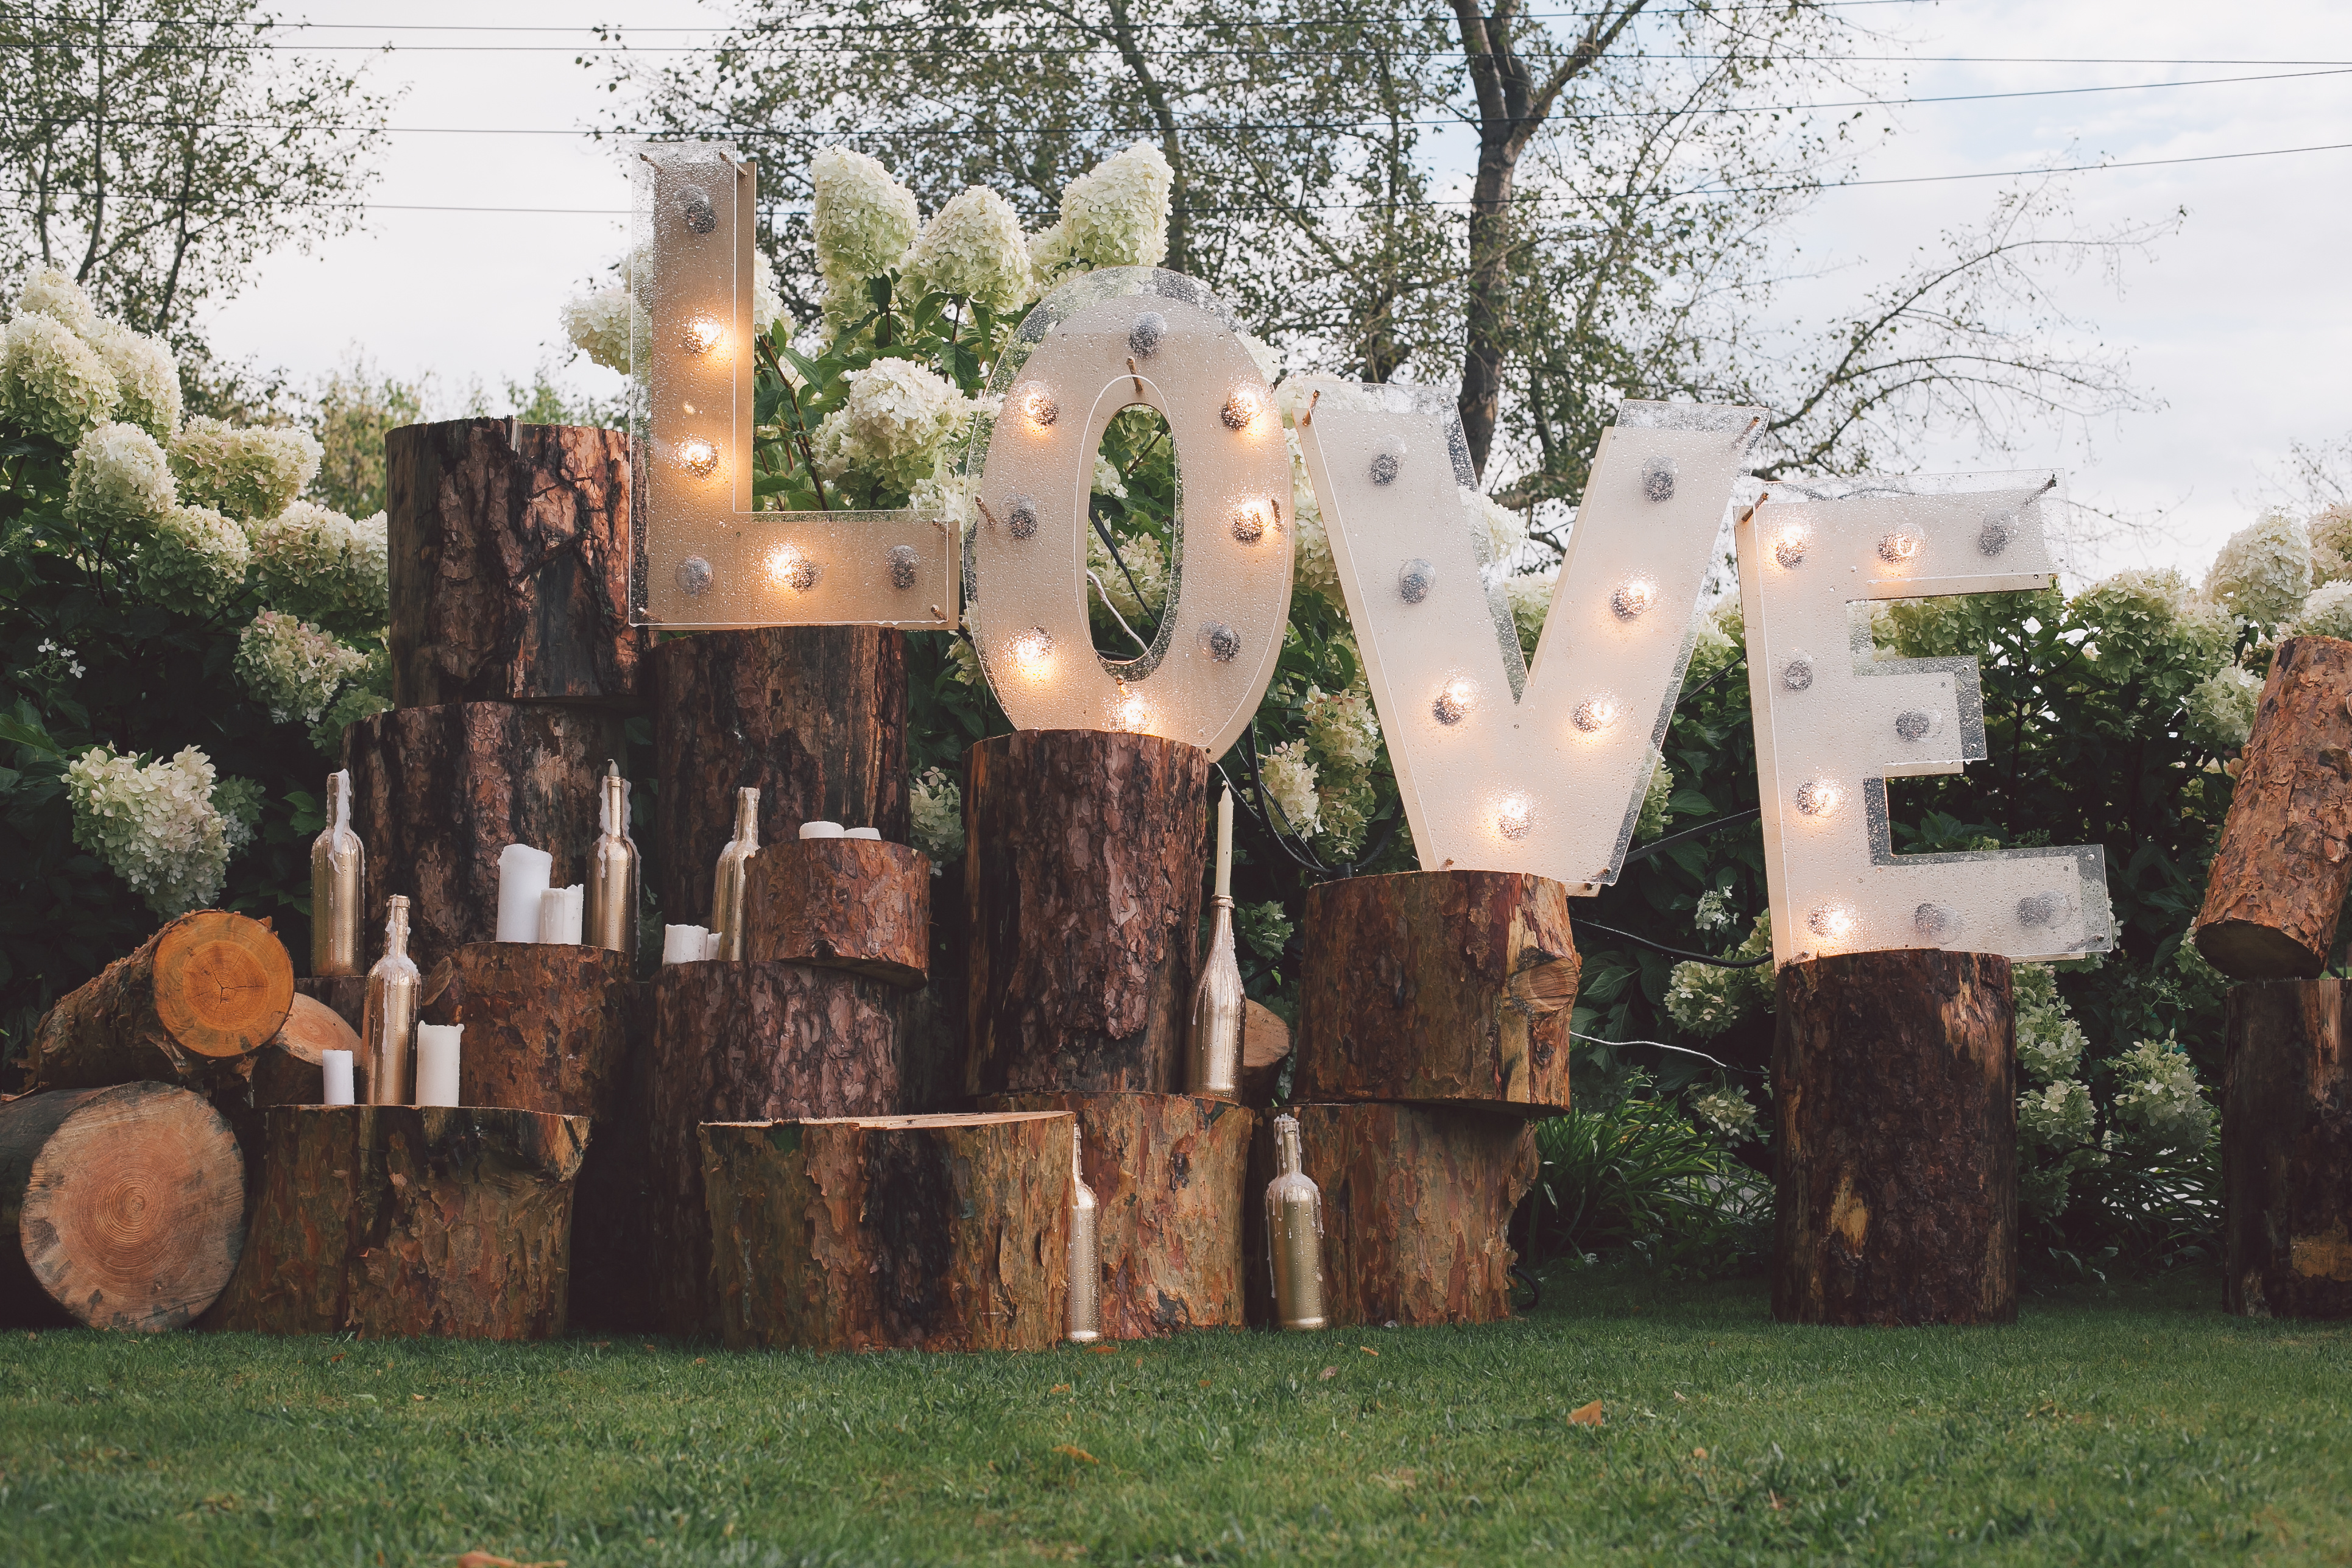 5 WAYS TO HAVE A GREEN WEDDING